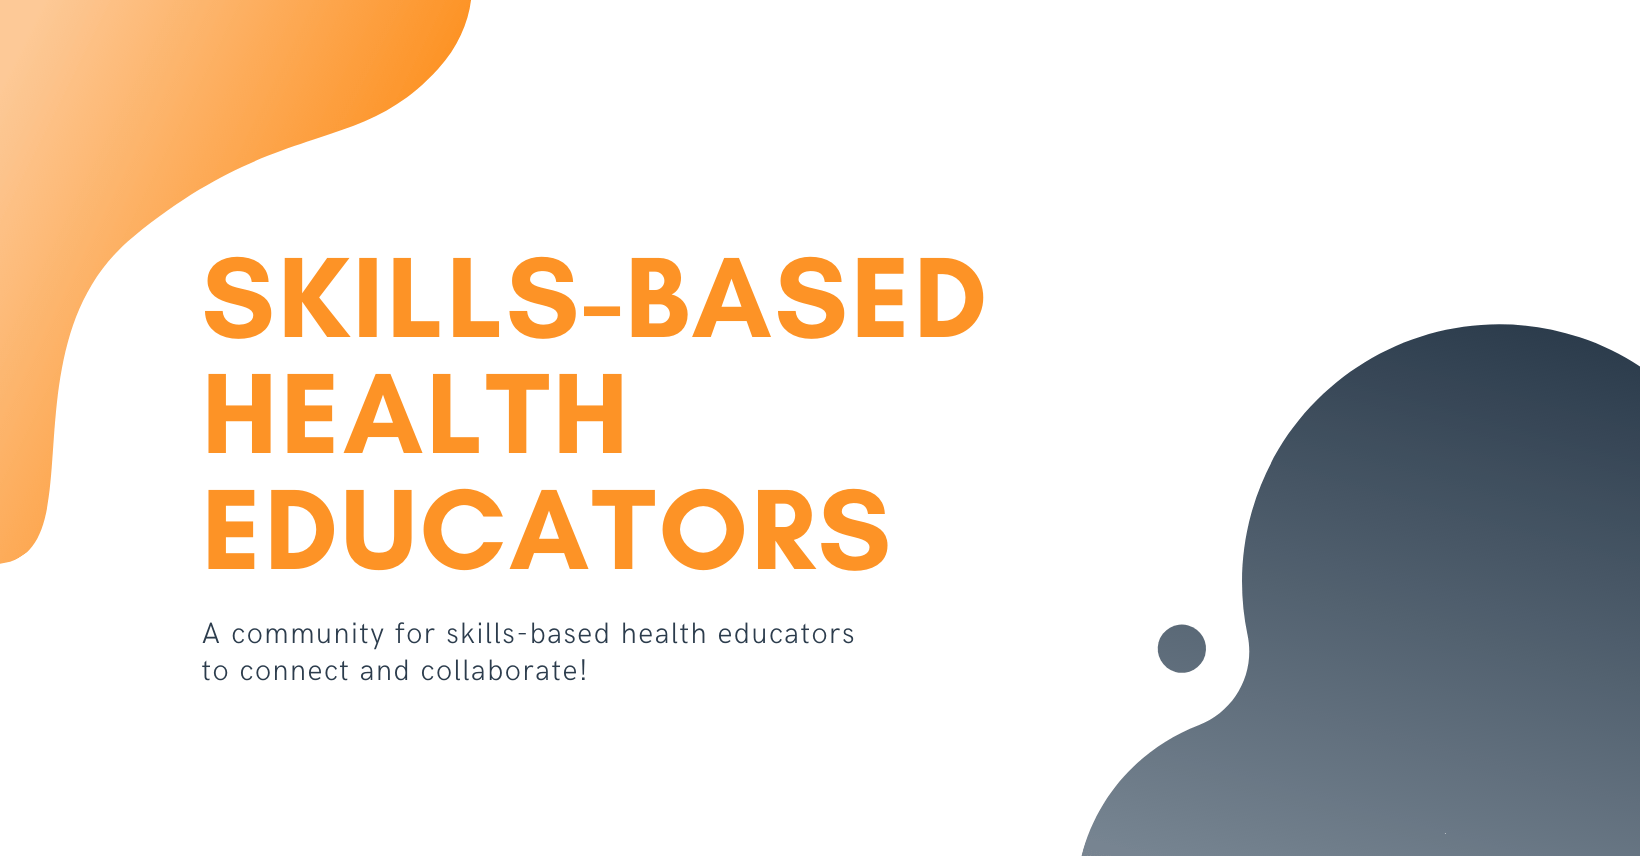 Skills-Based Health Educators Facebook group for health teachers to connect and collaborate